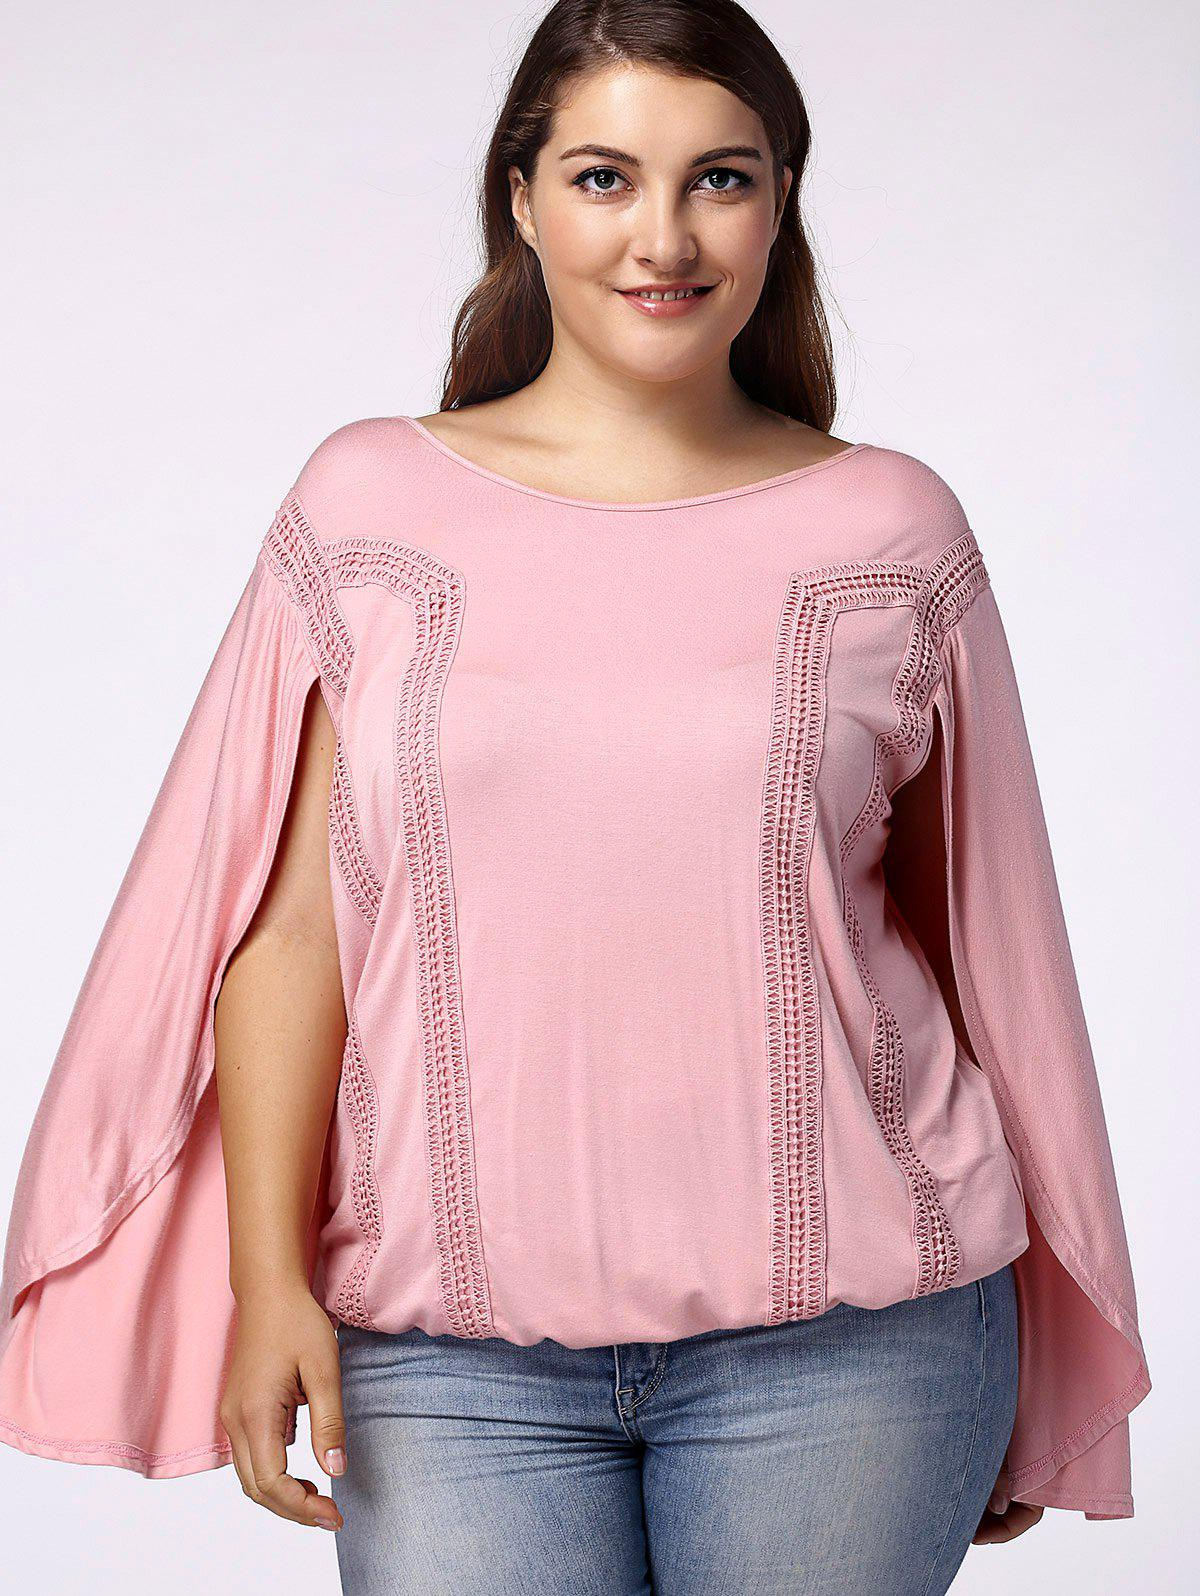 Trendy Scoop Neck Bat Sleeves Backside Hollow Out Blouse For Women - LIGHT PINK XL